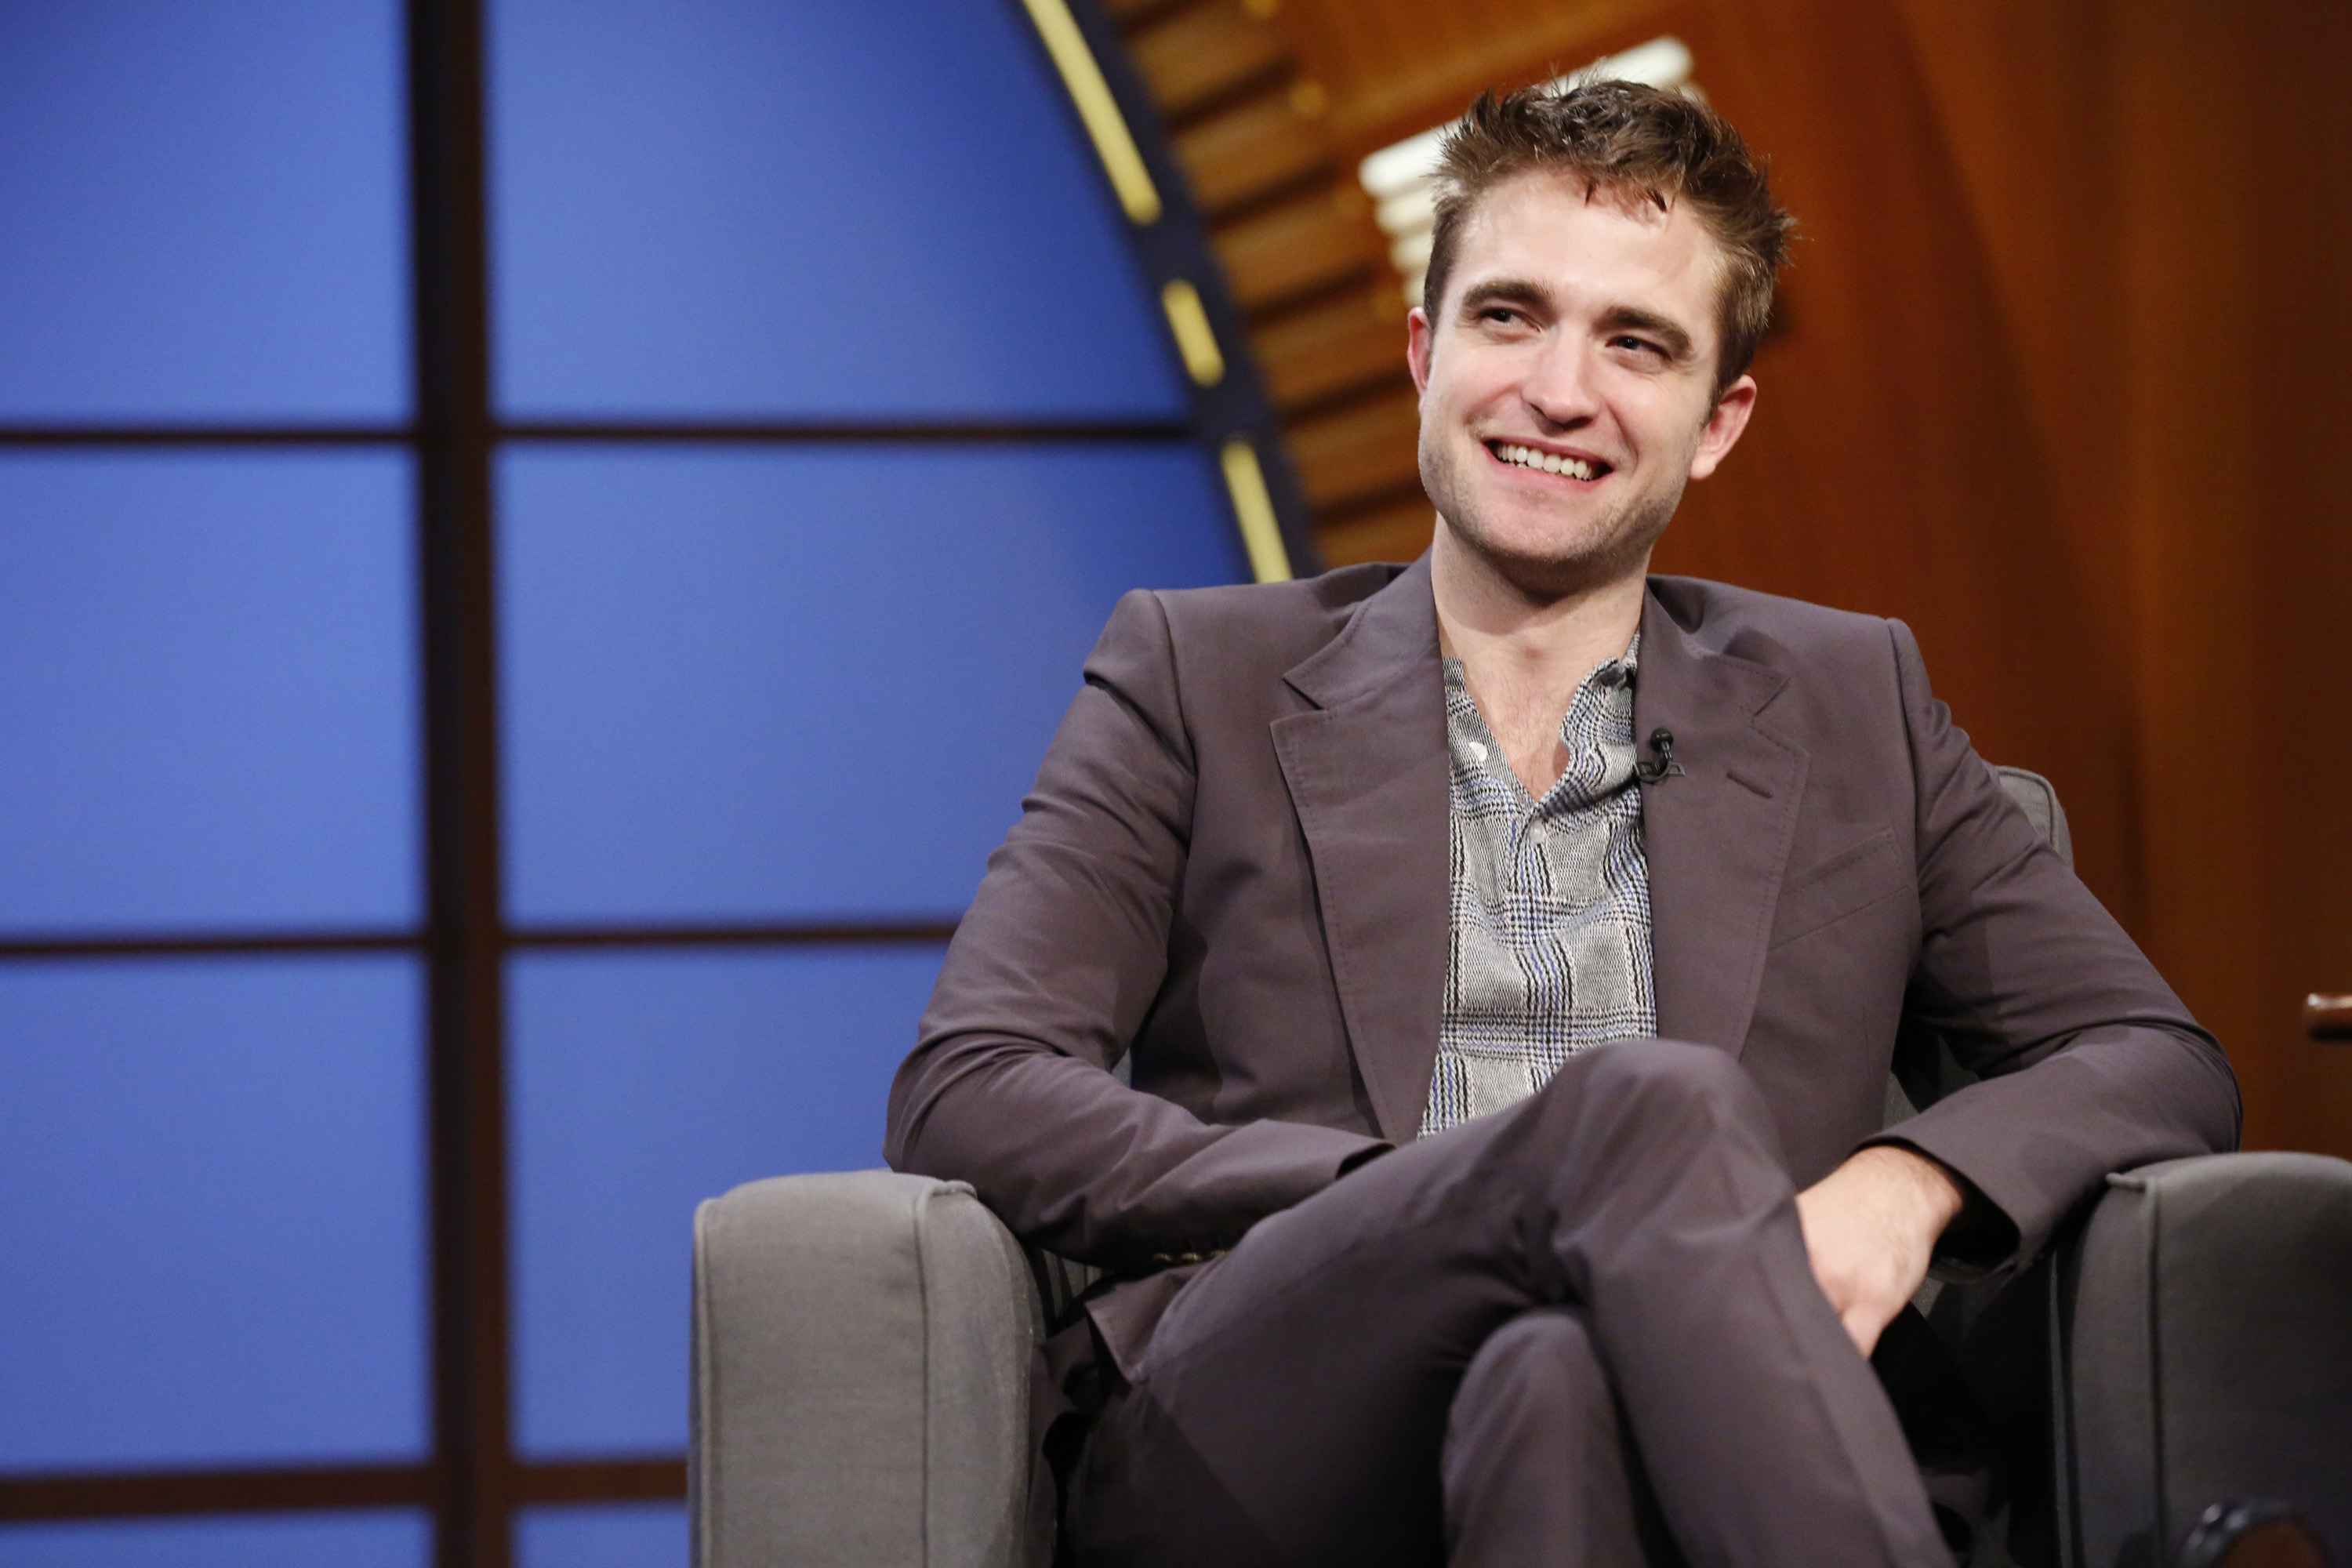 Fotos de Robert Pattinson em entrevistas em programas de TV